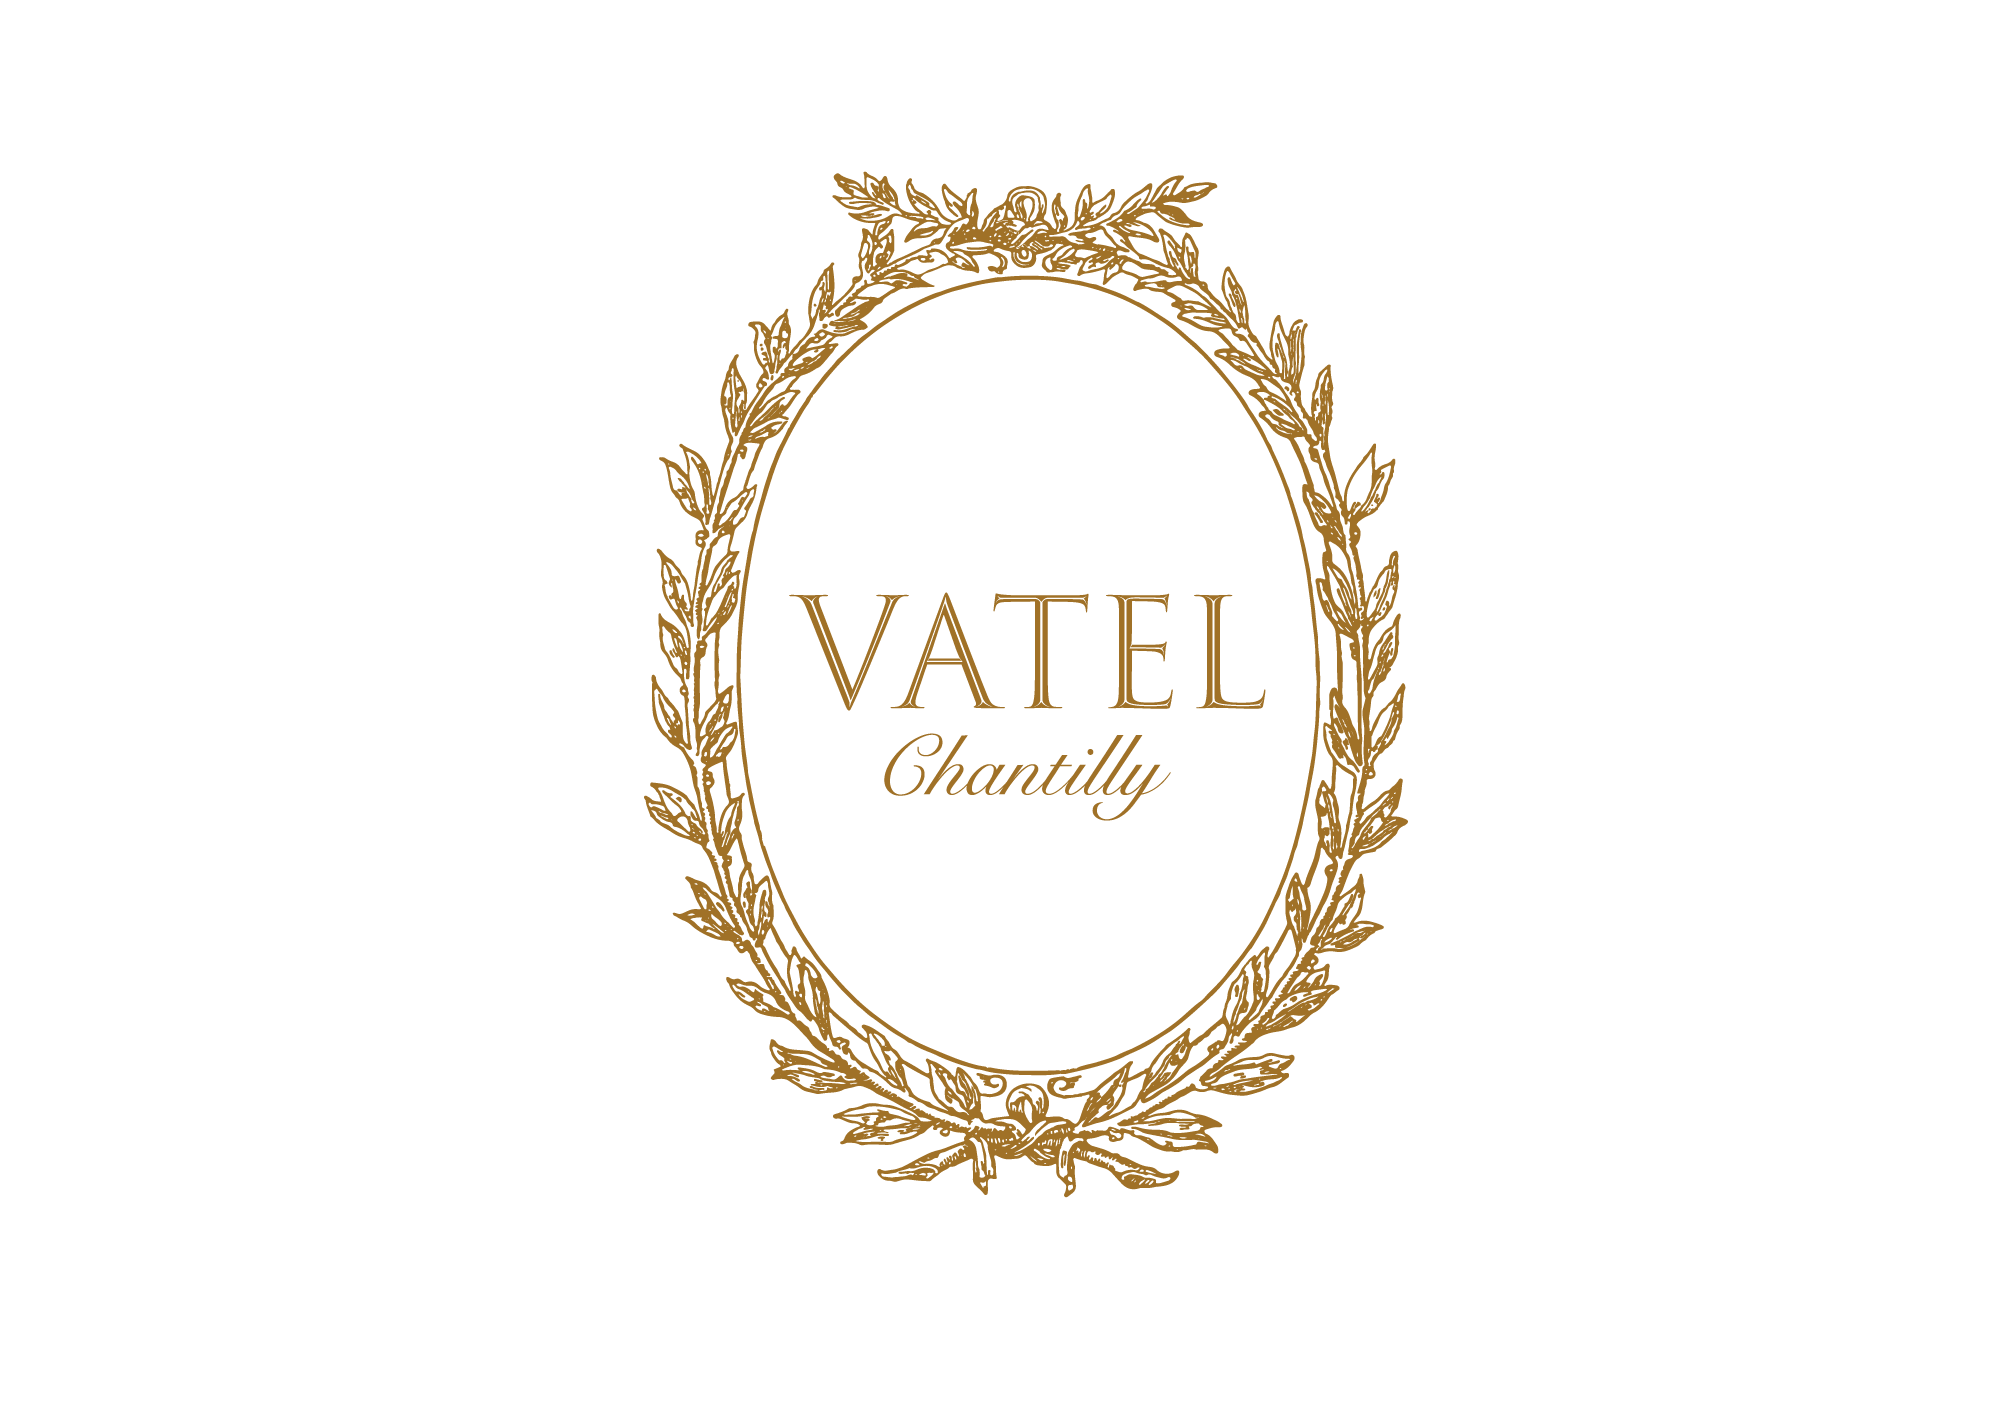 Vatel Chantilly - Restaurant en plein coeur de Chantilly